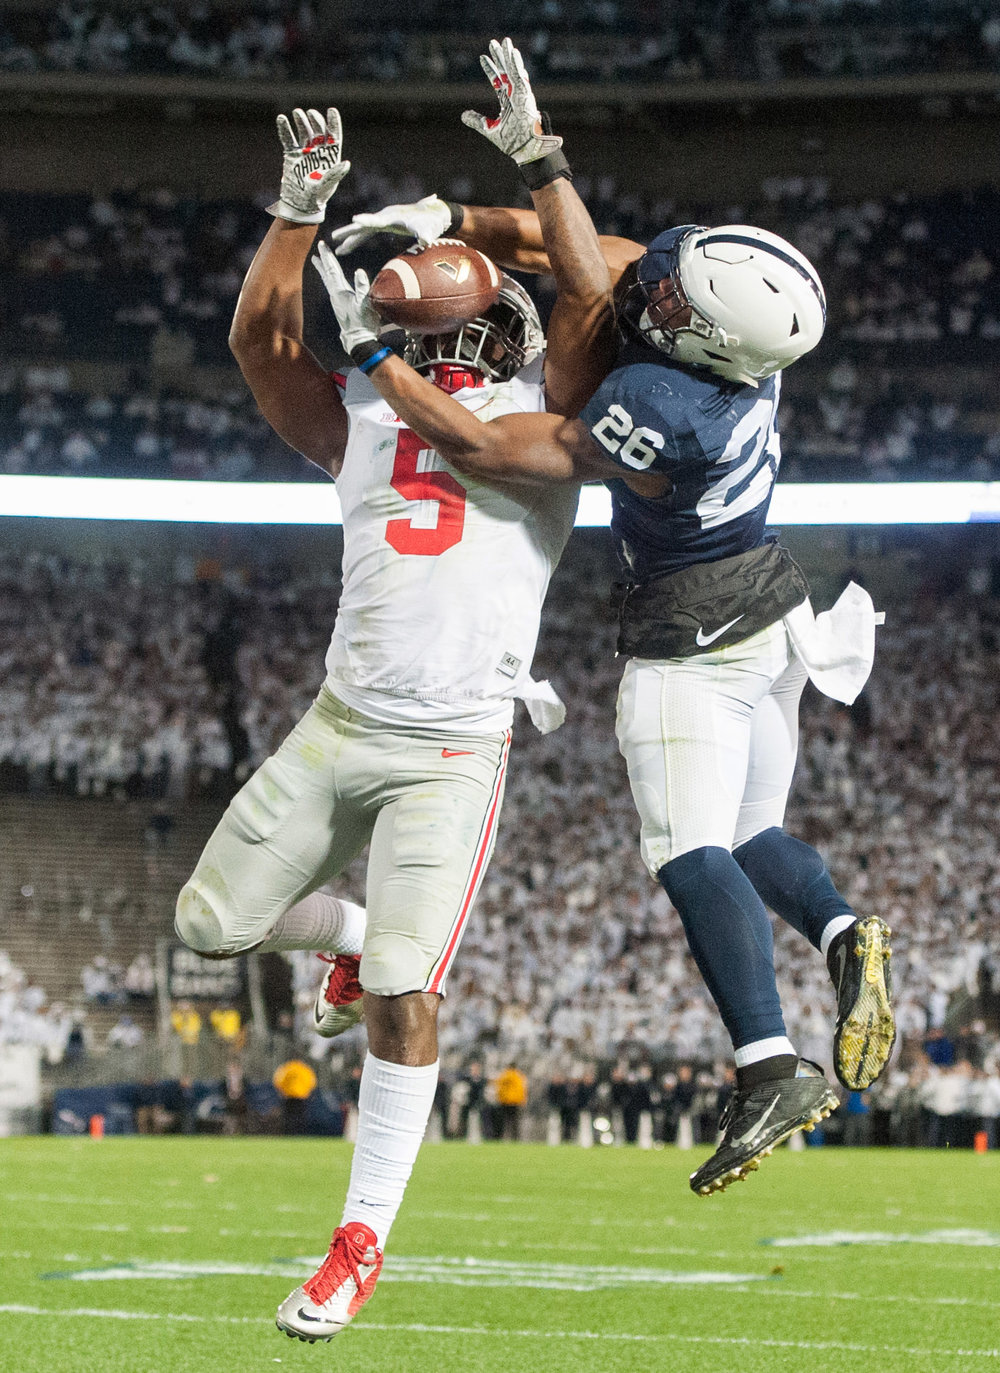 Penn State running back Saquon Barkley can't pull in a touchdown pass while pressured by Ohio State linebacker Raekwon McMillan during a college football game Saturday, Oct. 22, 2016, at Beaver Stadium in University Park.  Penn State beat Ohio State 24-21.